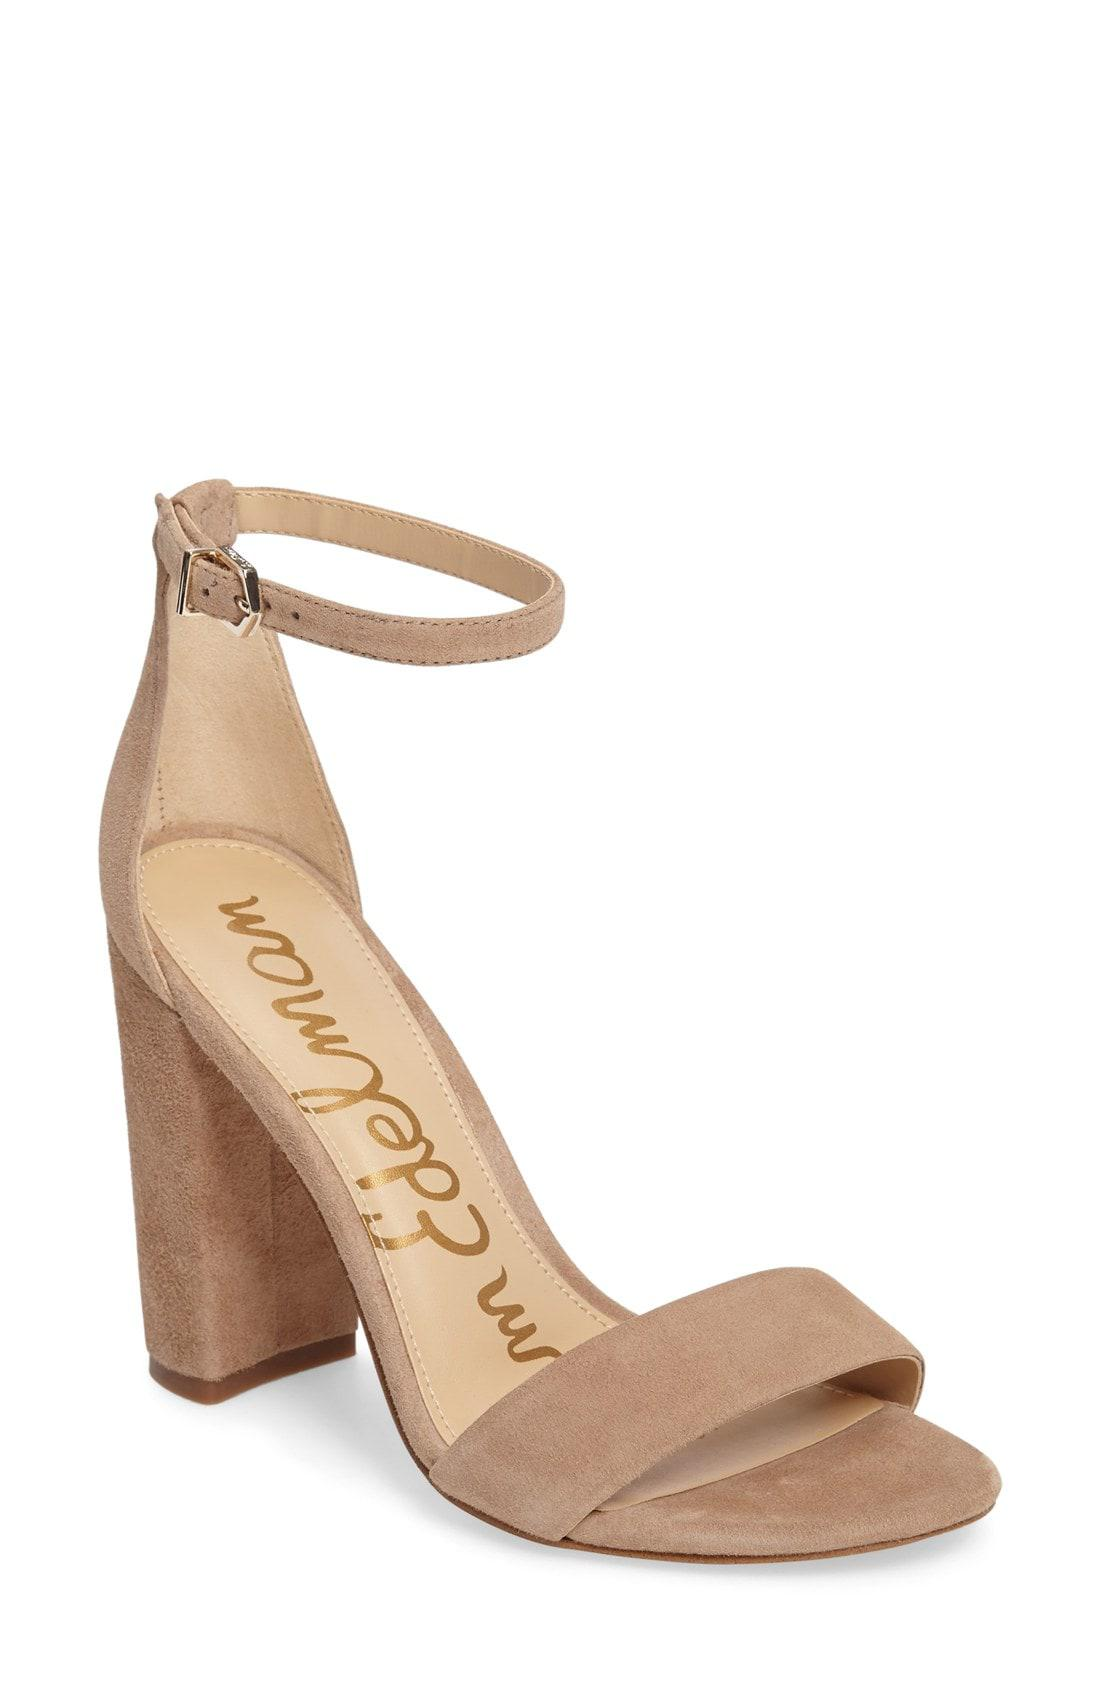 d749254209c Lyst - Sam Edelman Yaro Ankle Strap Sandal in Natural - Save 62%